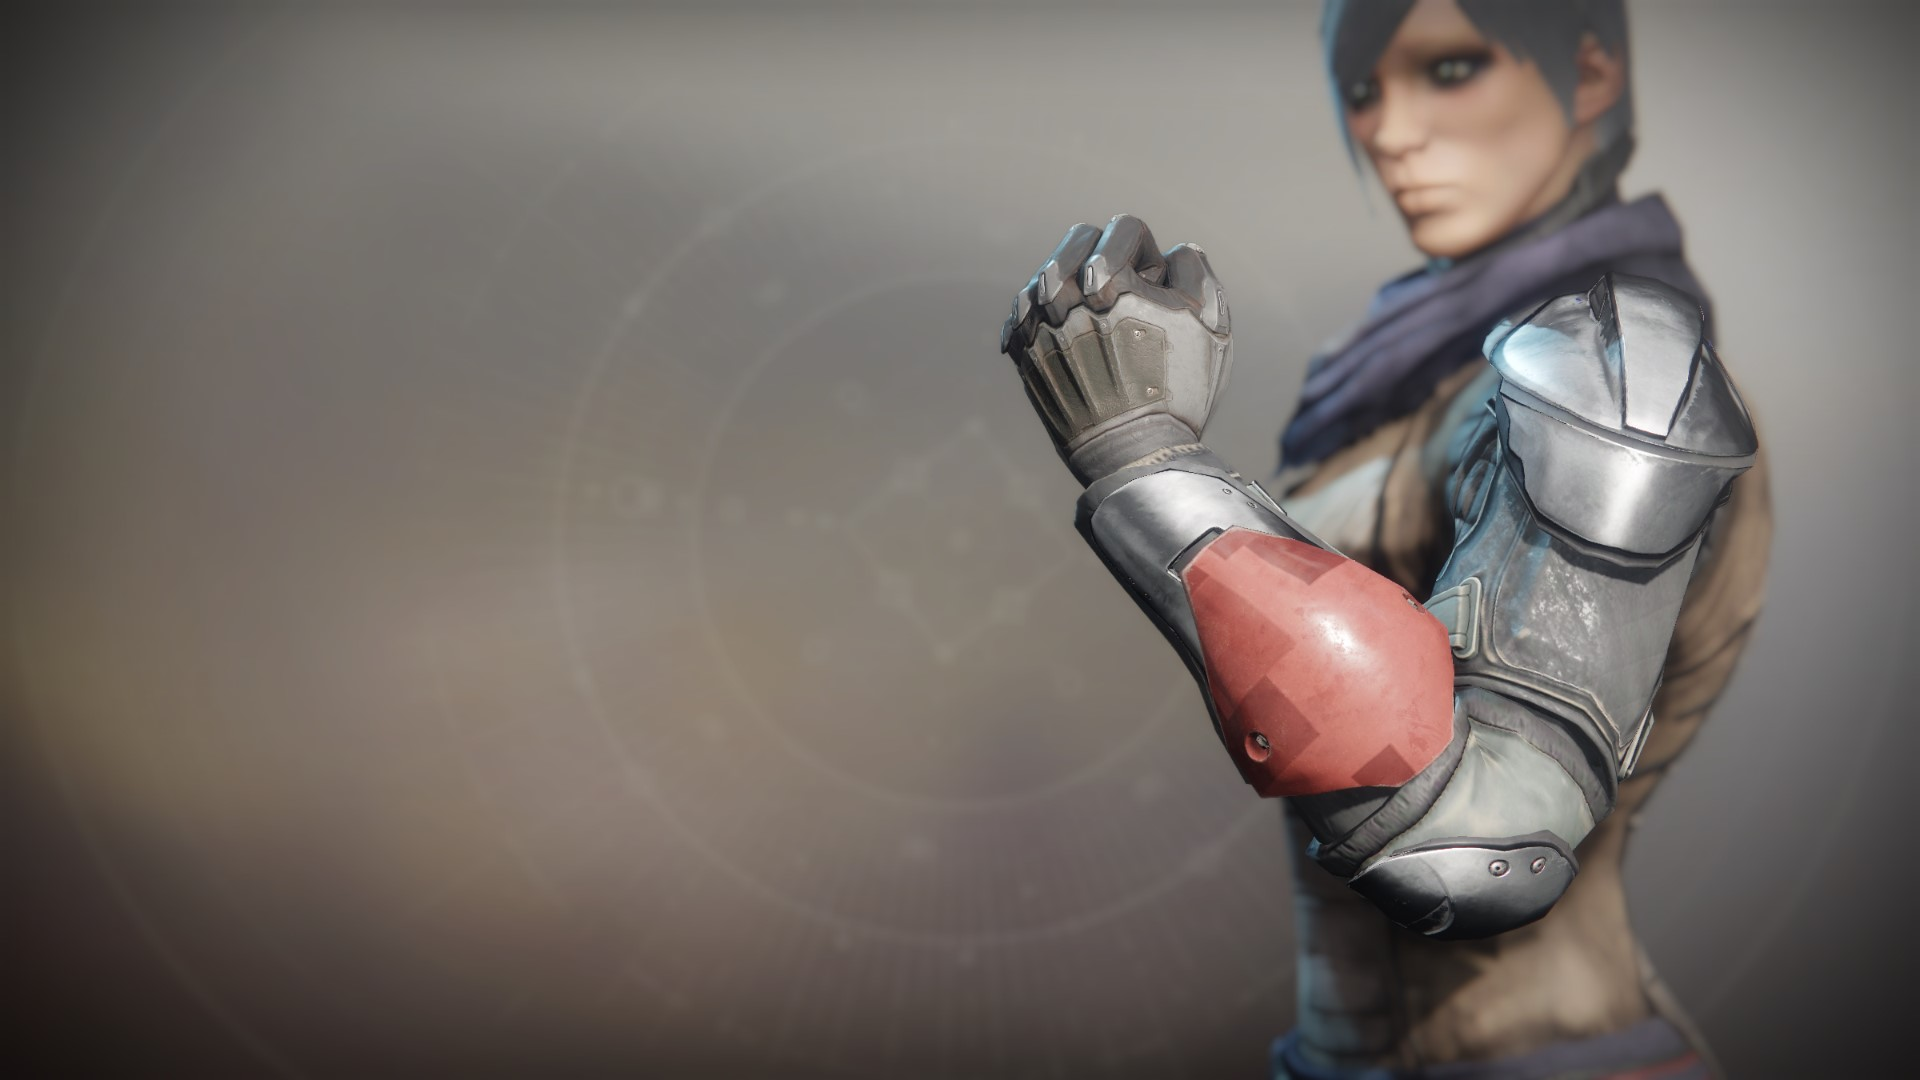 An in-game render of the Exodus Down Grips.